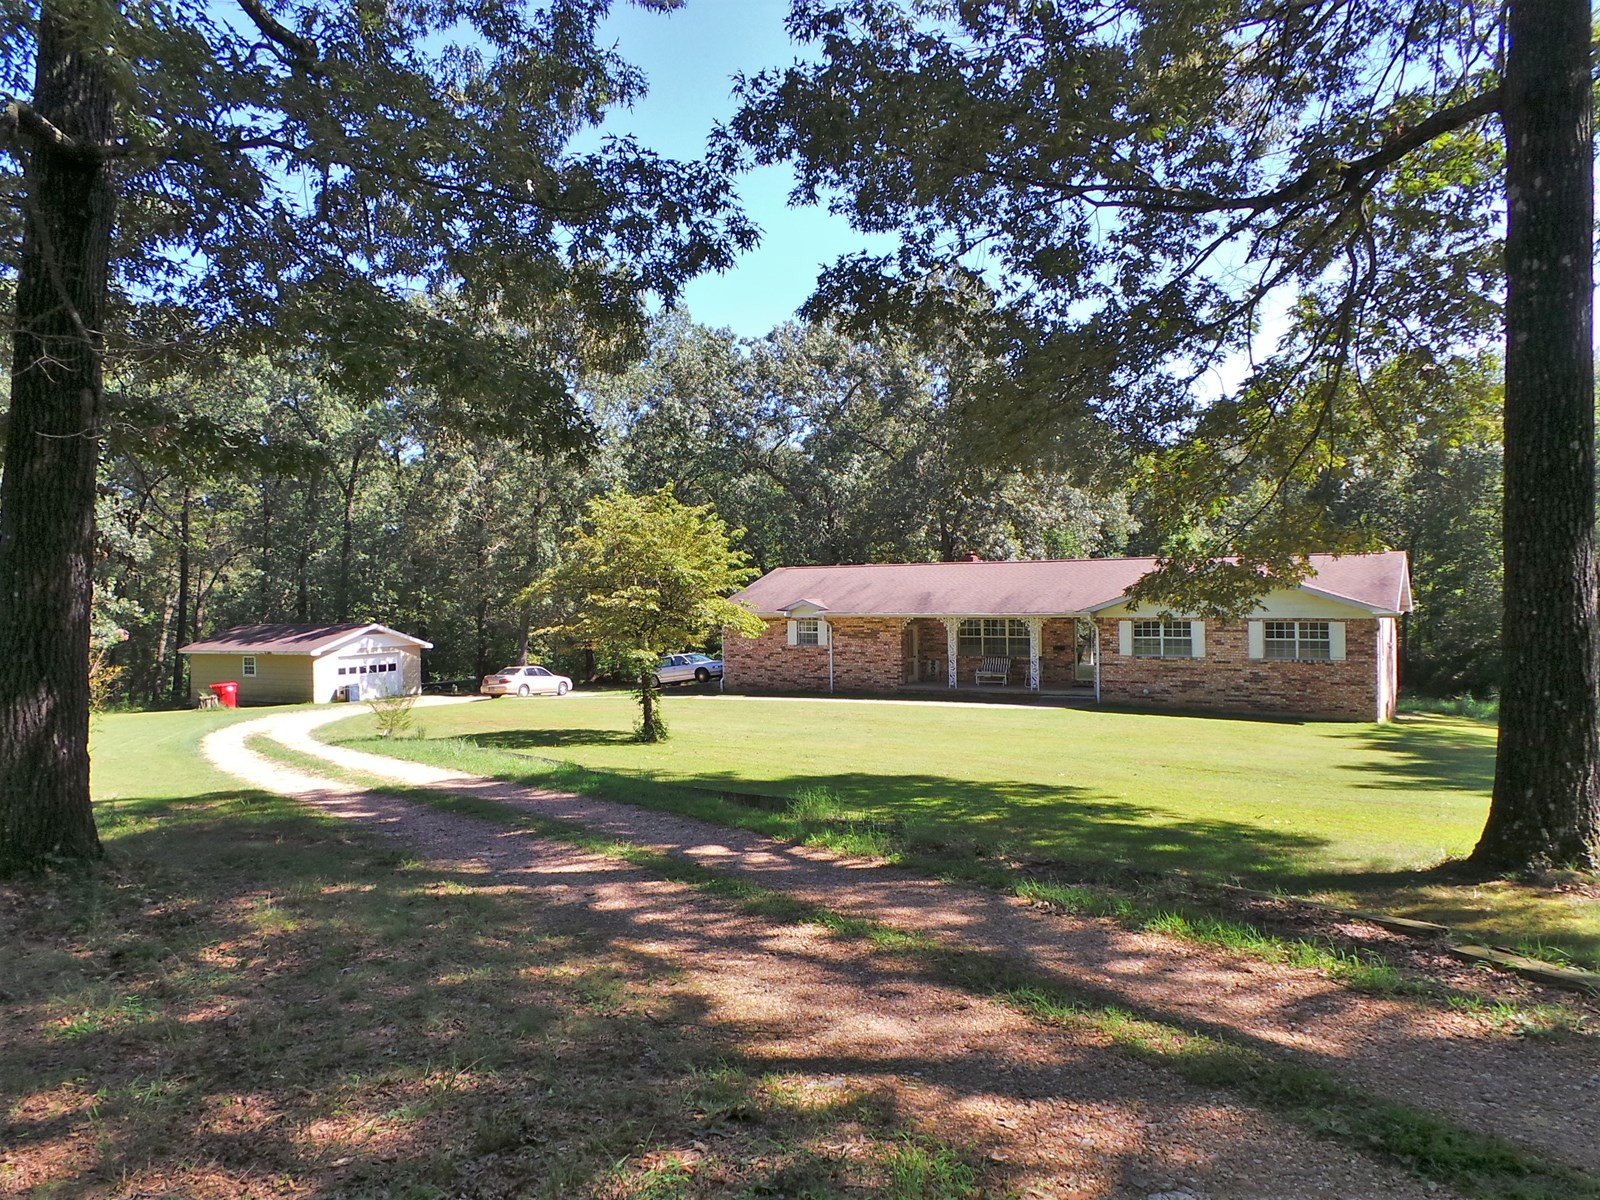 COUNTRY HOME FOR SALE IN FLIPPIN AR